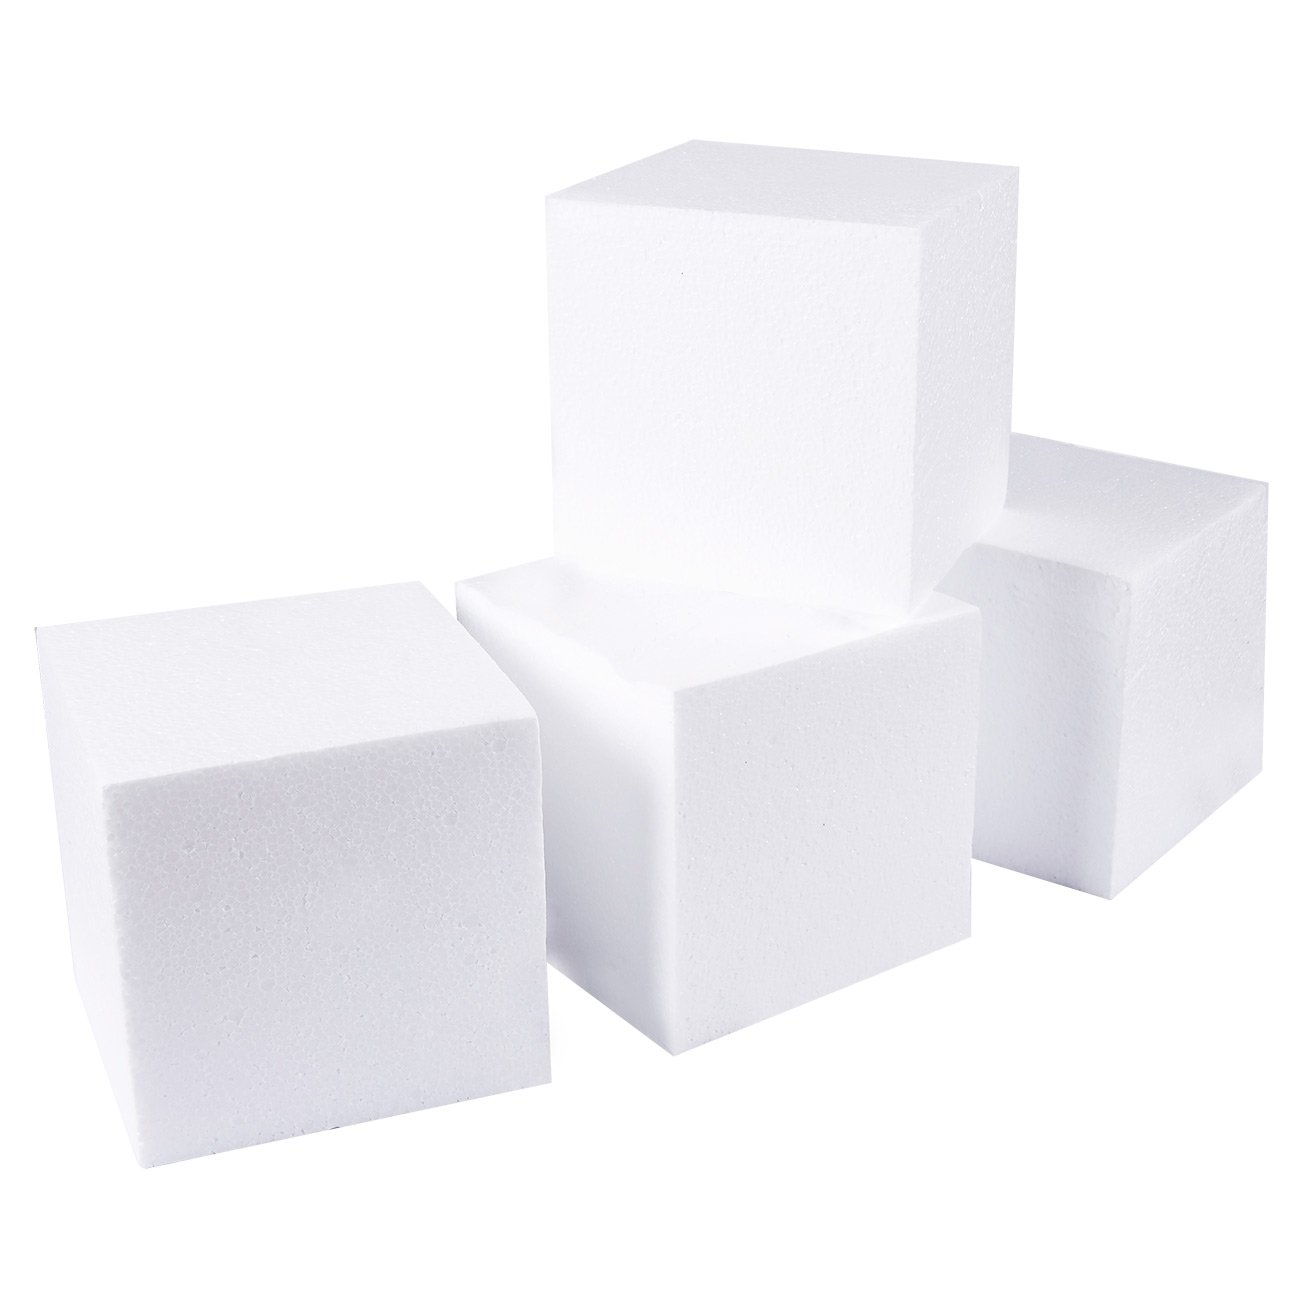 Craft Foam Cube - 4-Pack Square Polystyrene Foam Block Foam Brick for Sculpture, Modeling, DIY Arts and Crafts - White, 6 x 6 x 6 inches Juvale